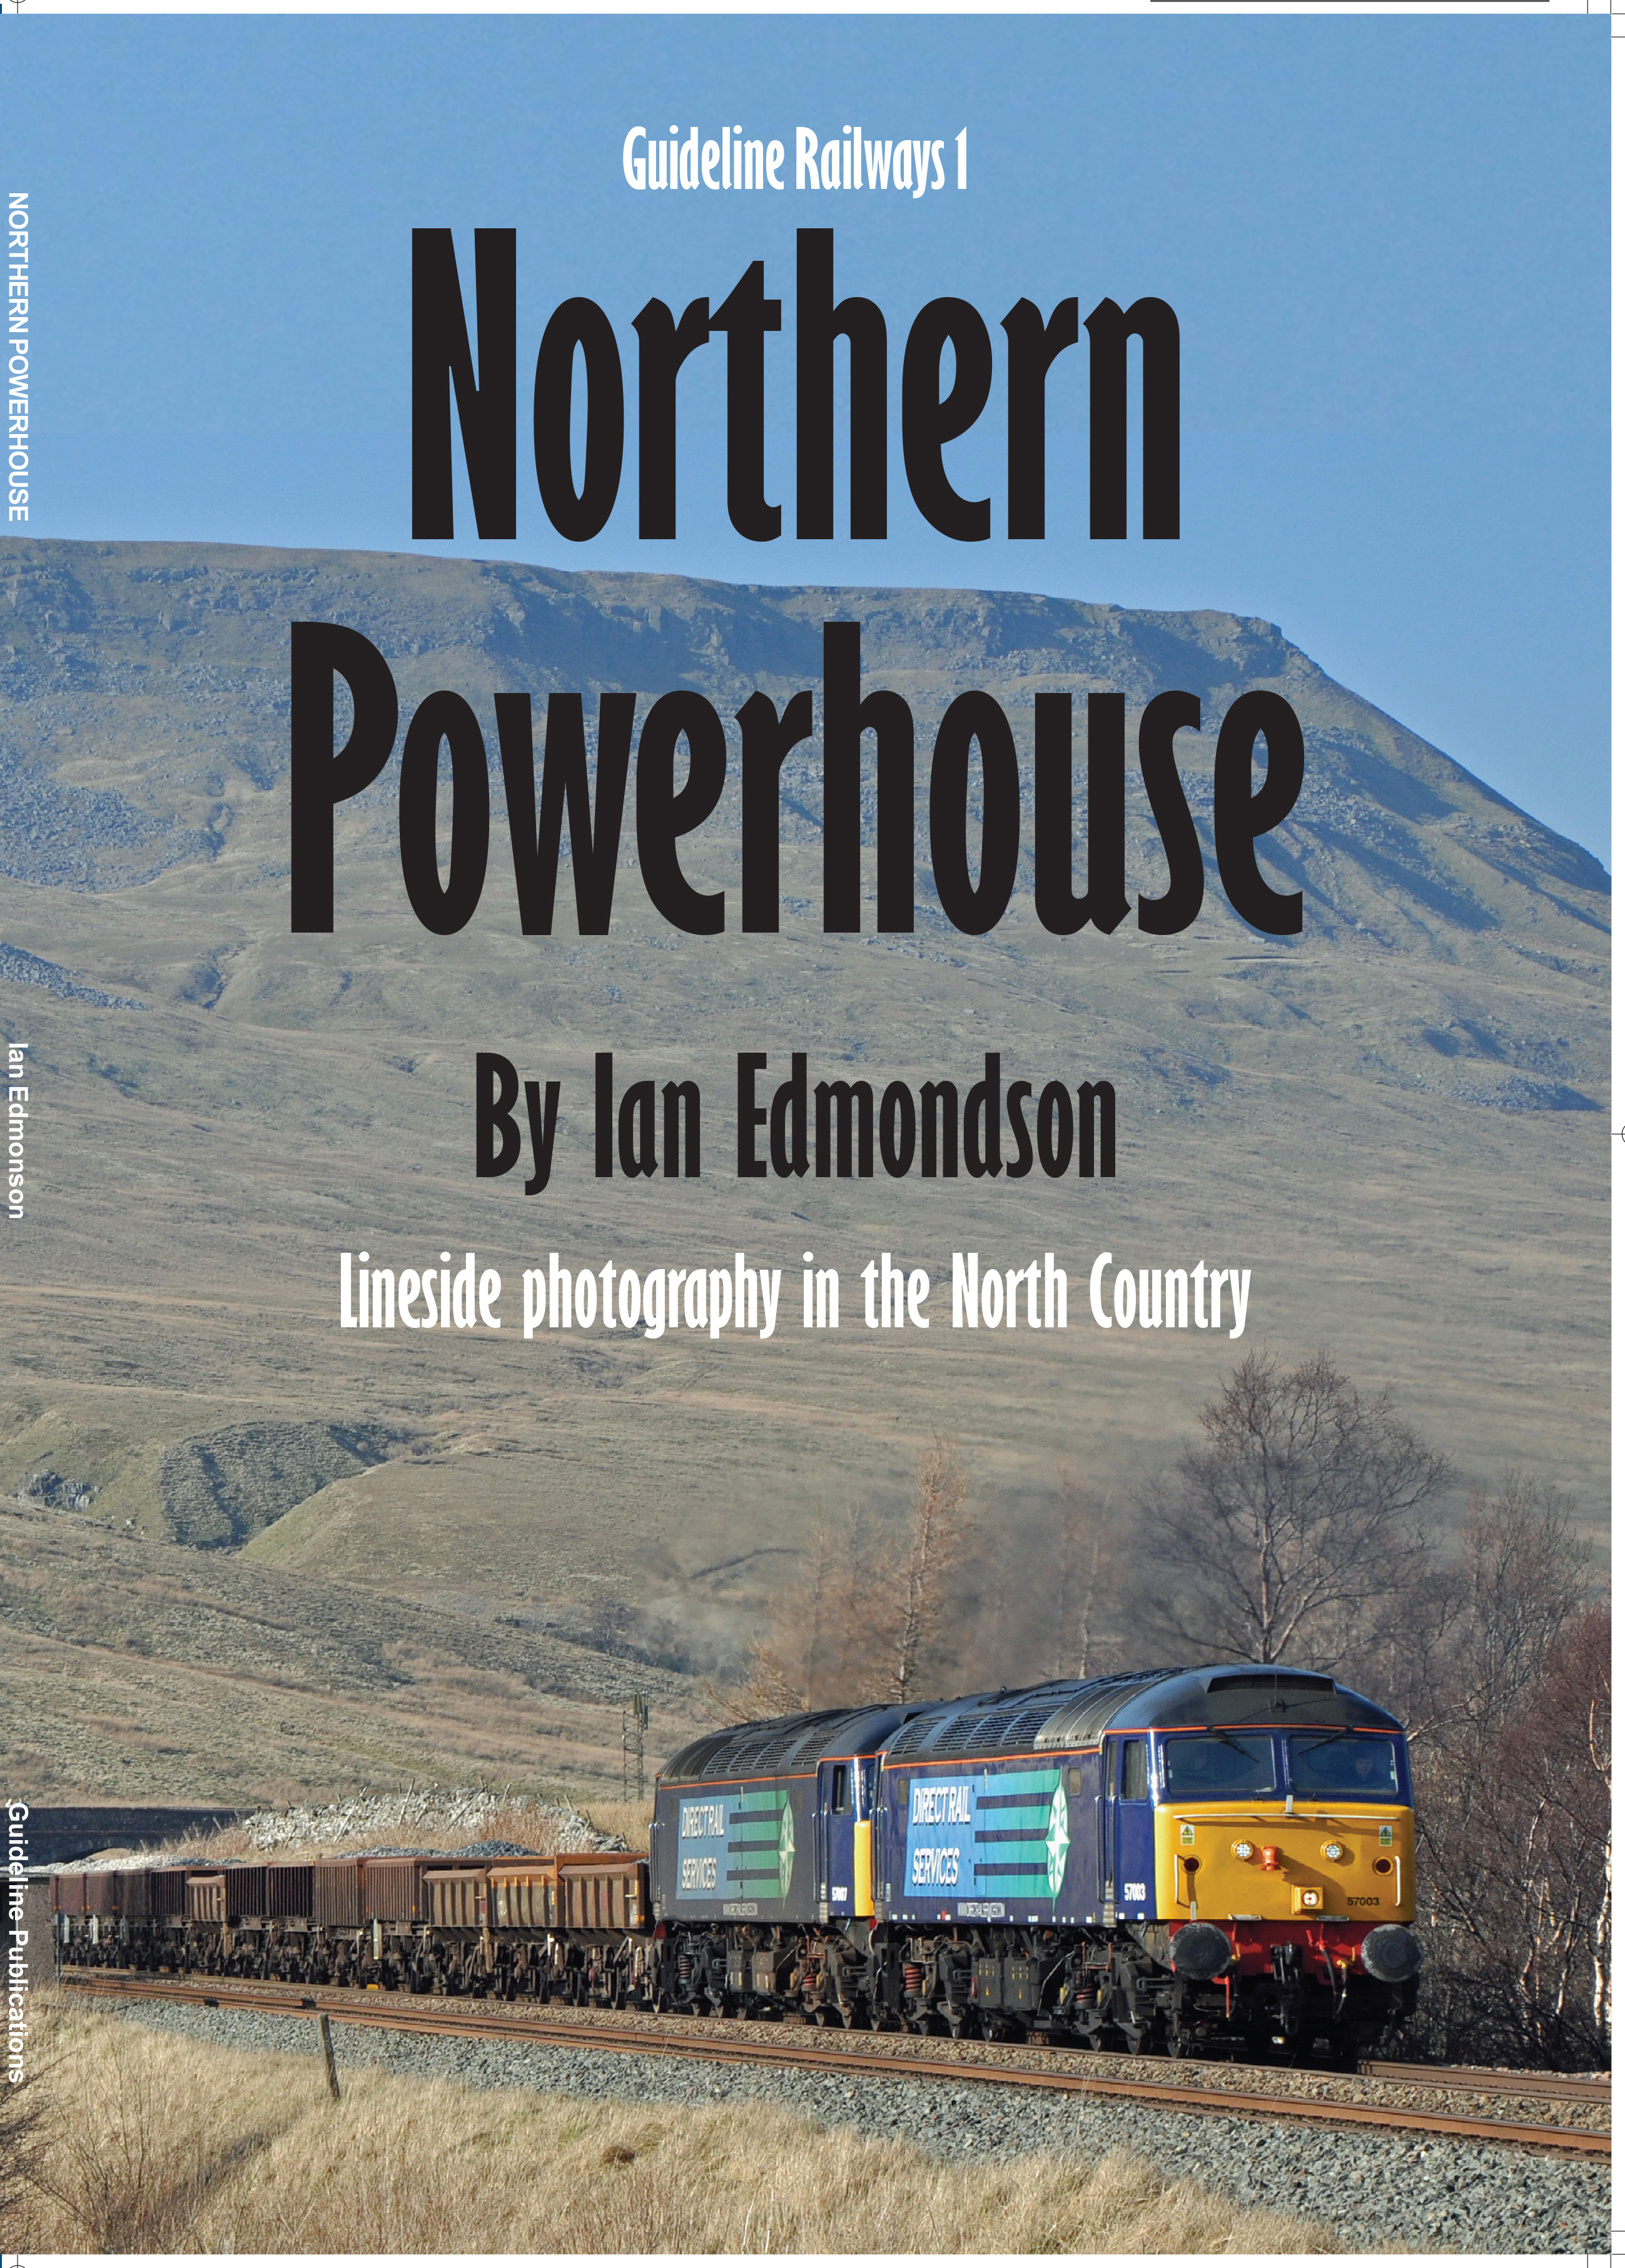 Guideline Publications USA Northern Powerhouse Lineside photography in the North Country